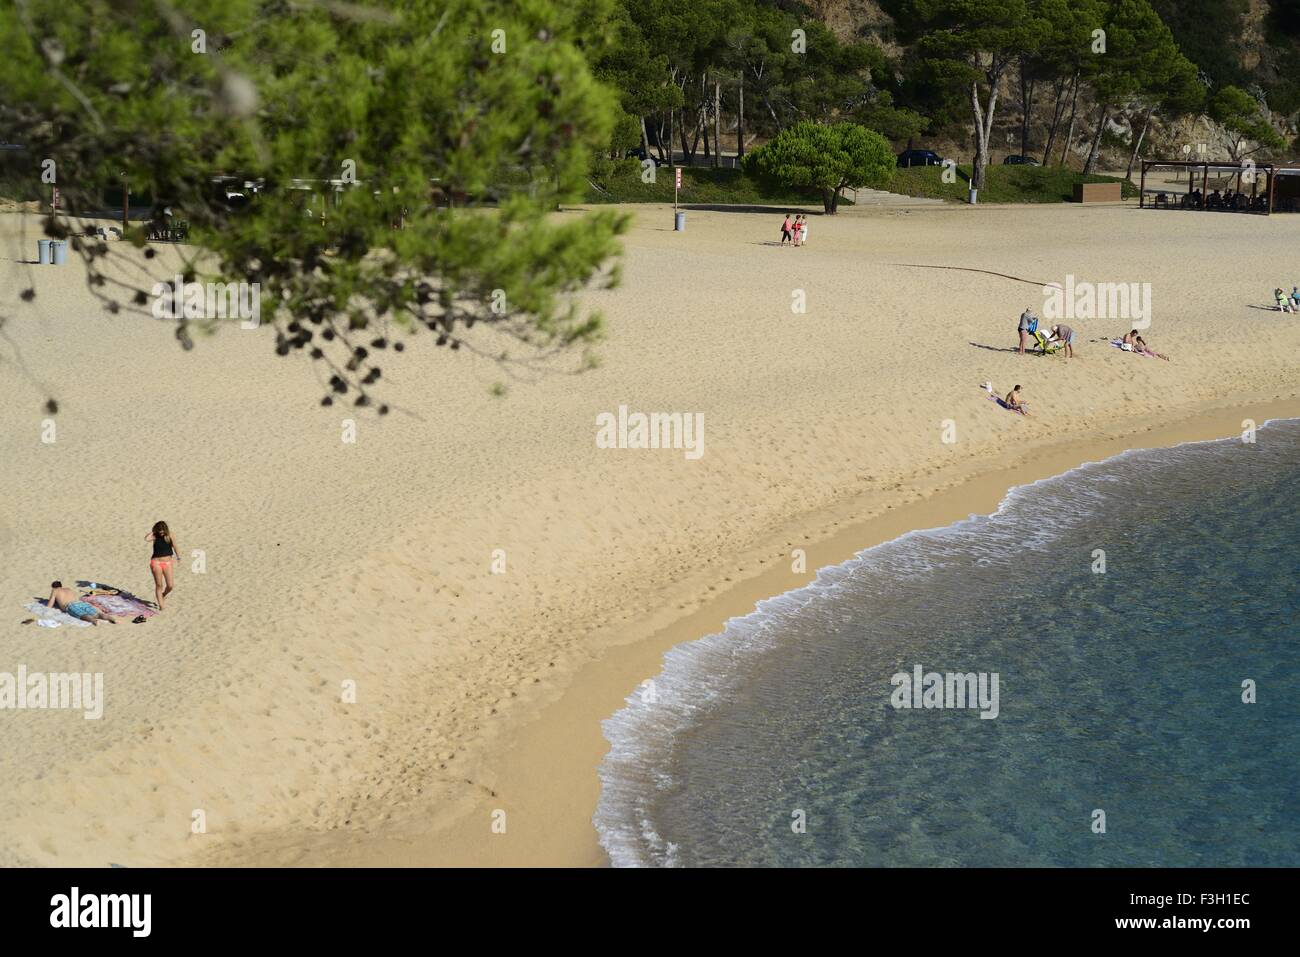 The Beach at Sa Conca, S' Agaro, Costa Brava, Catalunya, Spain - Stock Image